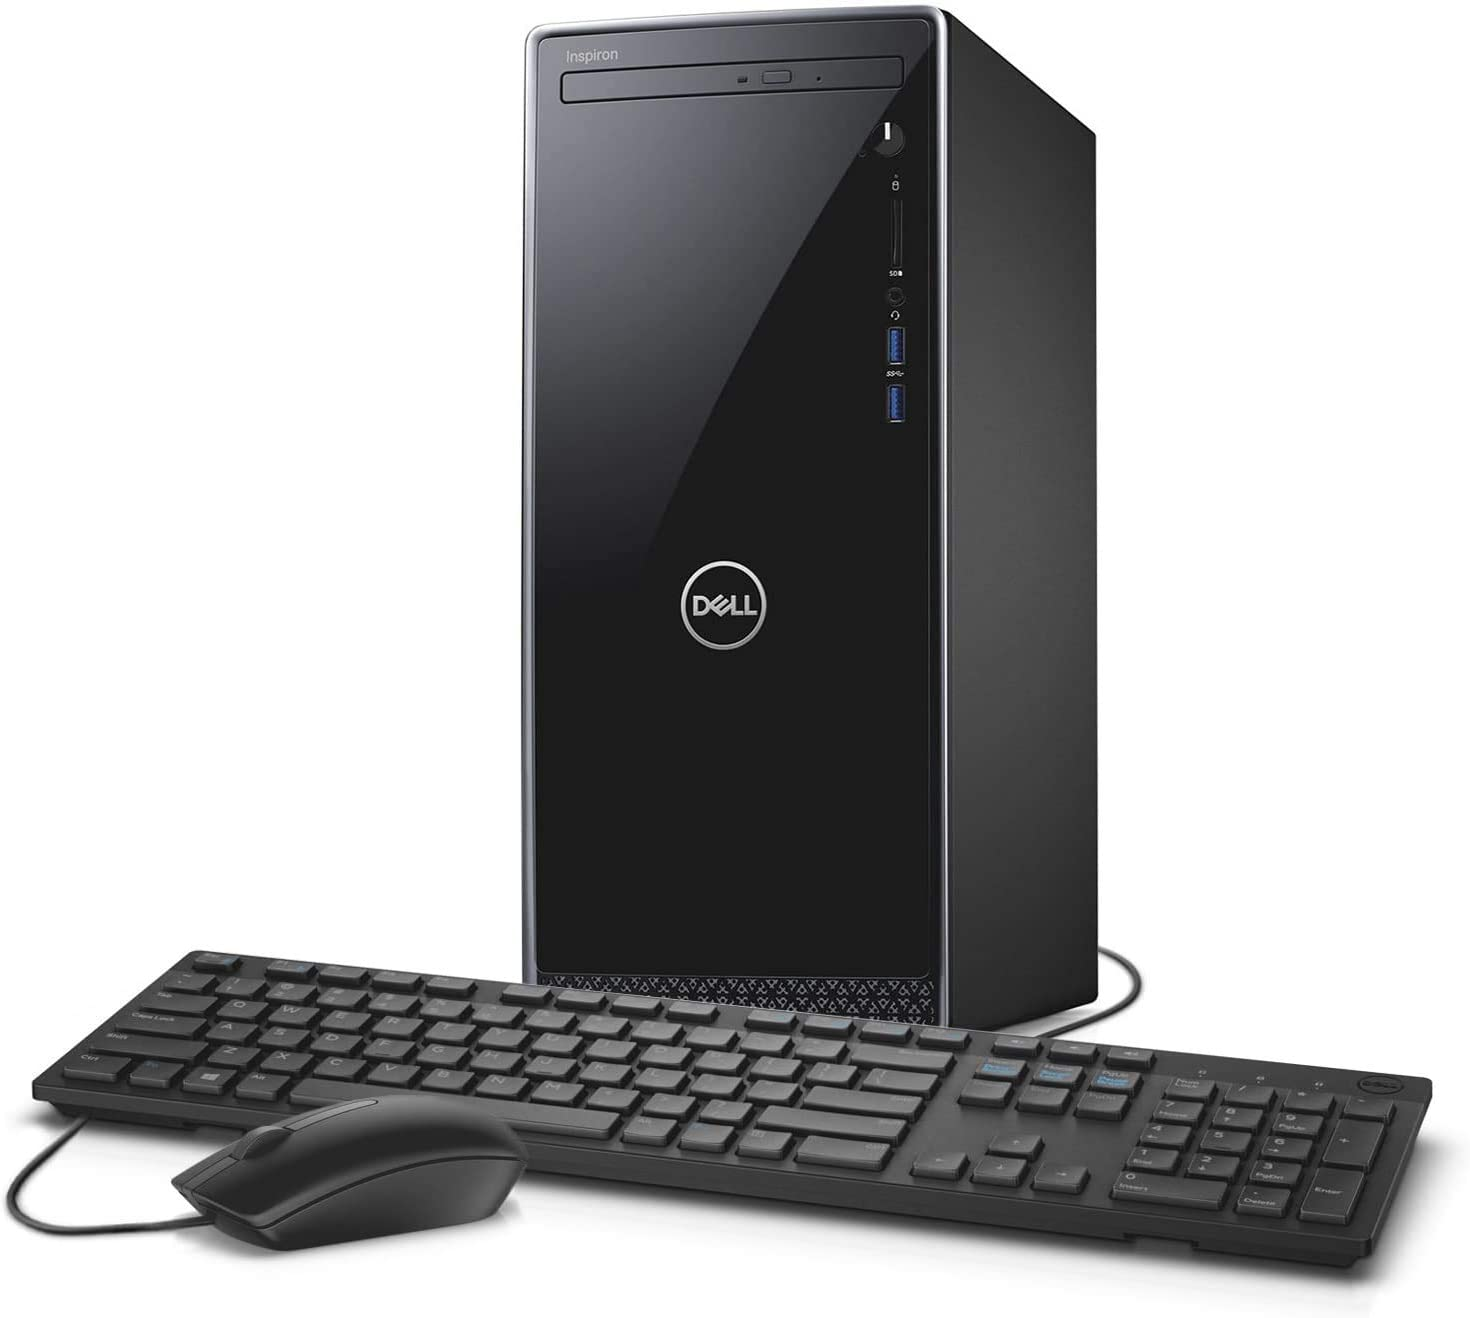 2020 Dell Inspiron Desktop Tower: 9th gen Intel 8-Core i7-9700, 16GB RAM, 512GB SSD + 1TB HDD Dual Drive, NVIDIA GeForce GTX 1050 Graphics, WiFi, Bluetooth, DVDRW, Win 10 w/Rock eDigital Accessories